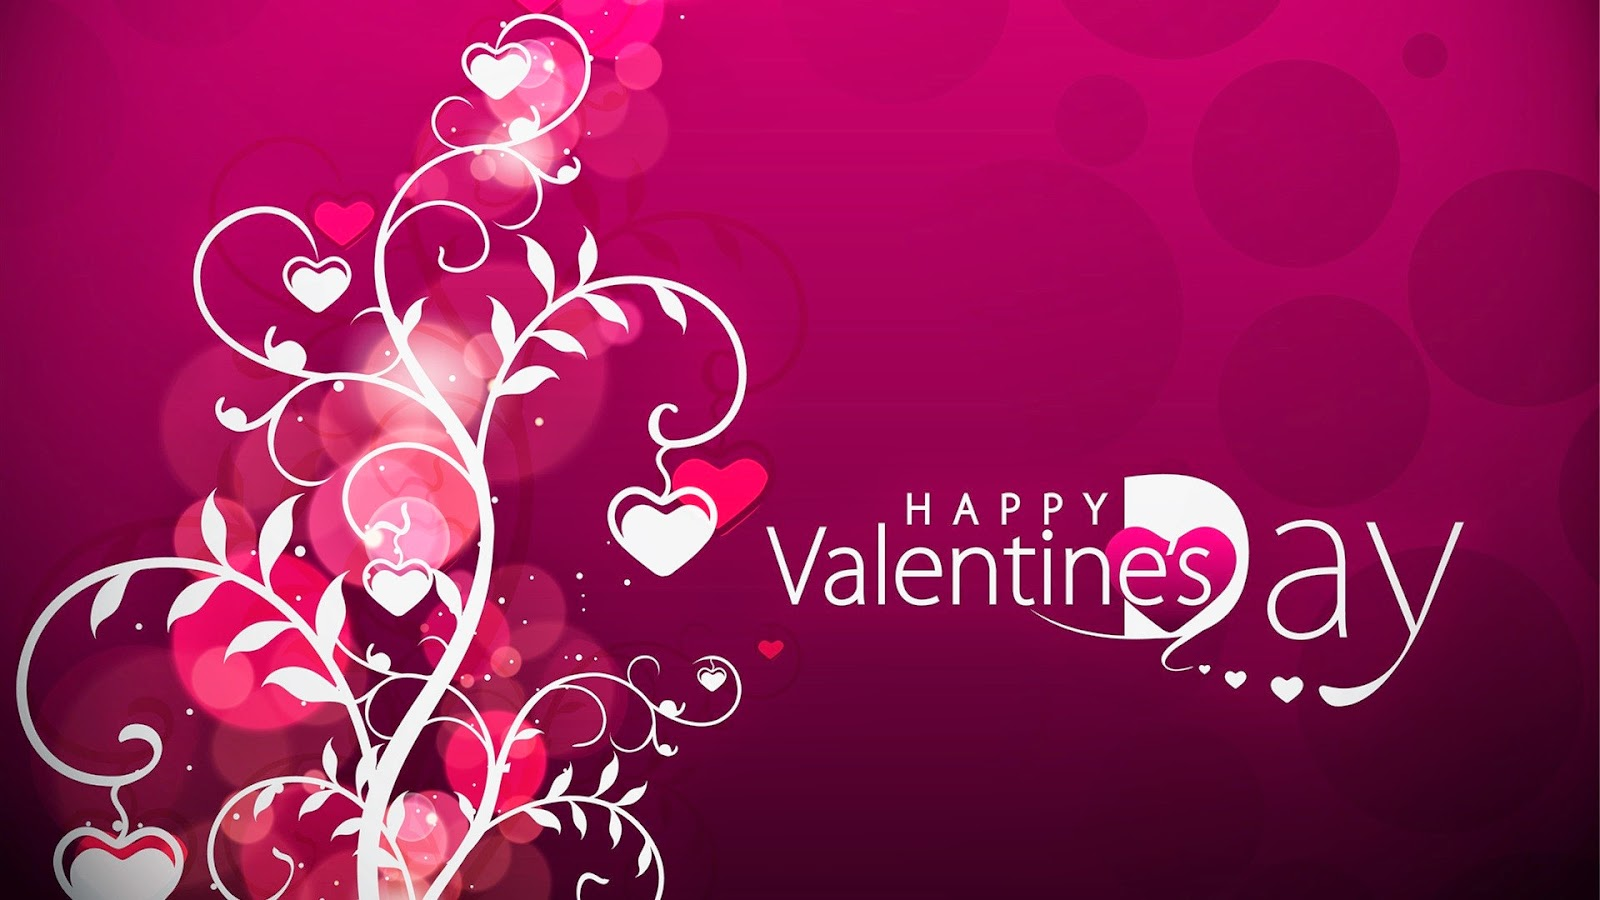 Happy New Year Wallpapers 2016 Valentines Day 2015